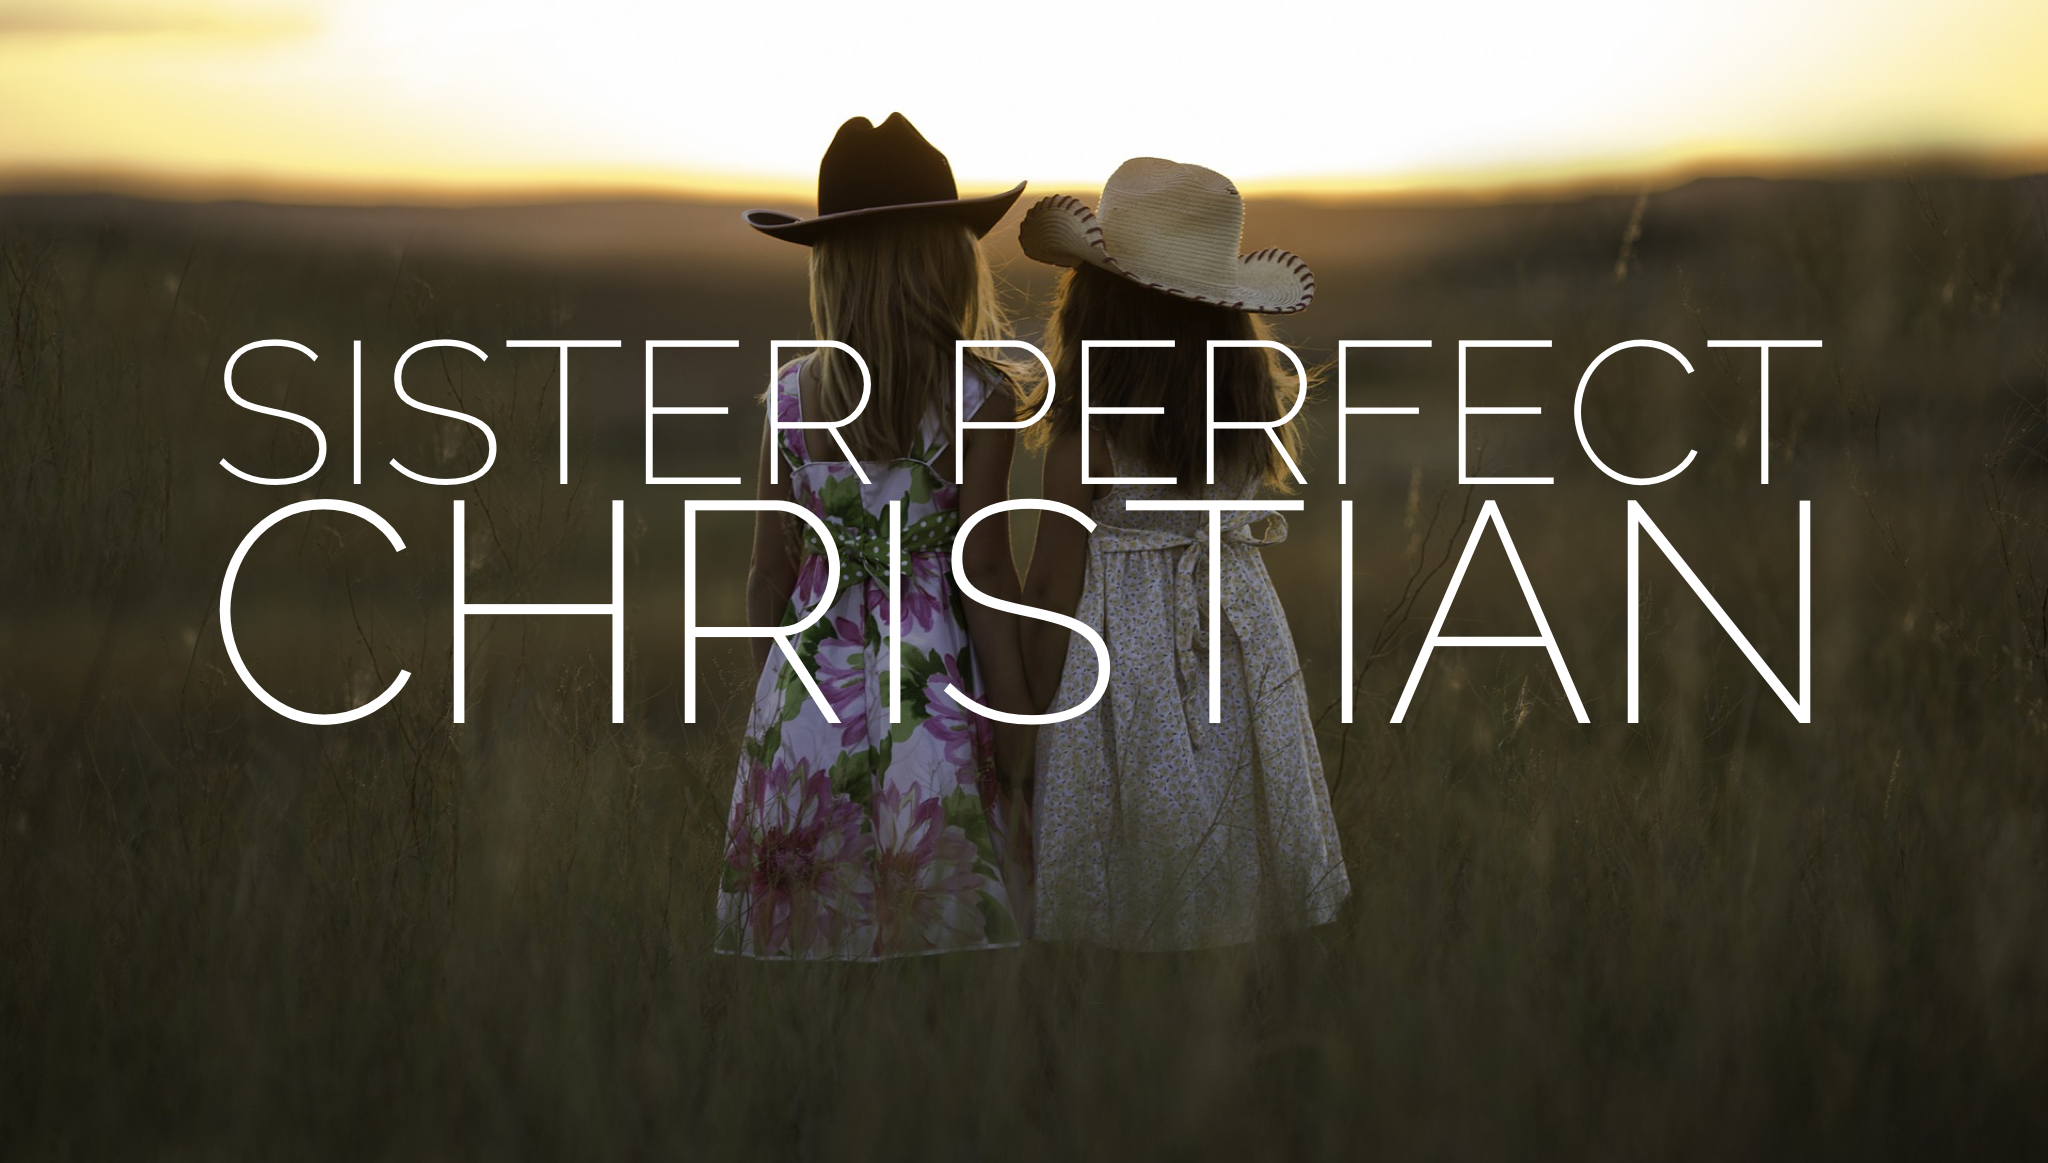 Sister Perfect Christian